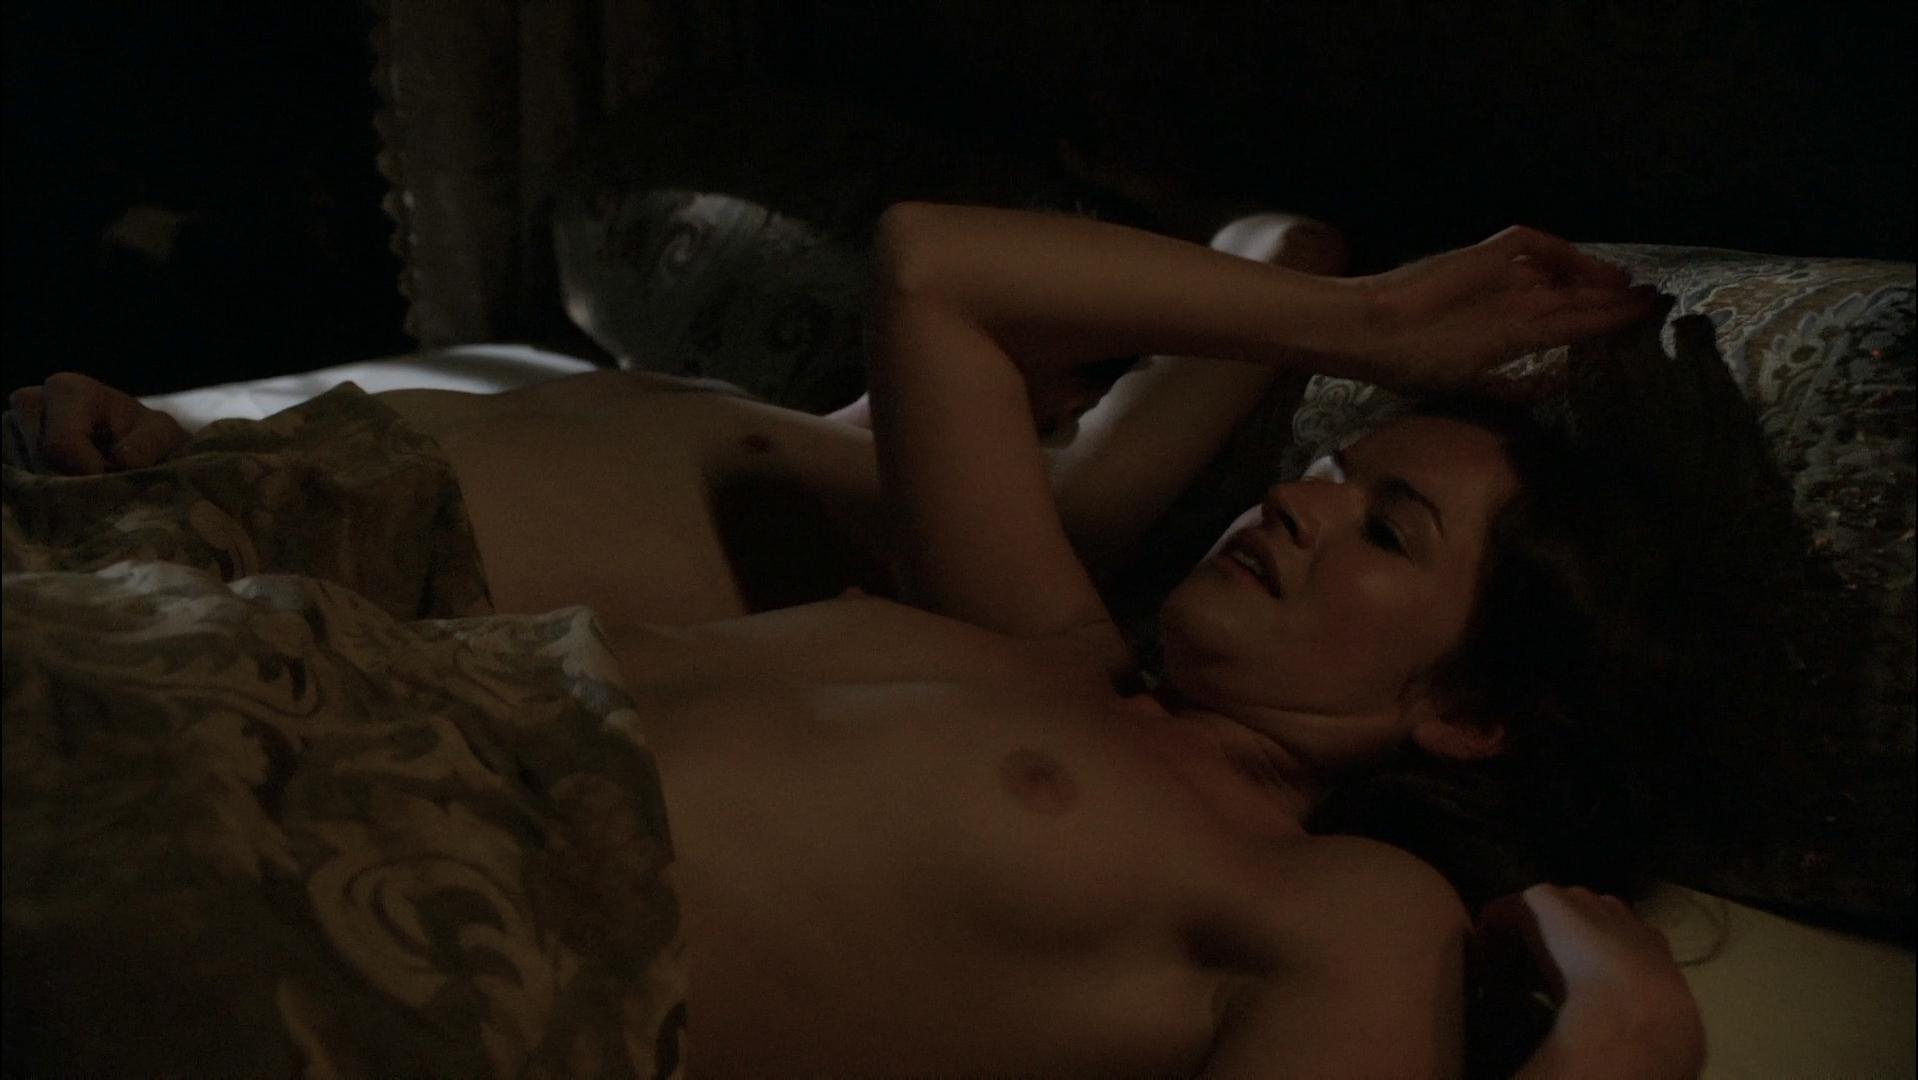 Joanne King nude - The Tudors s04e02-03 (2010)